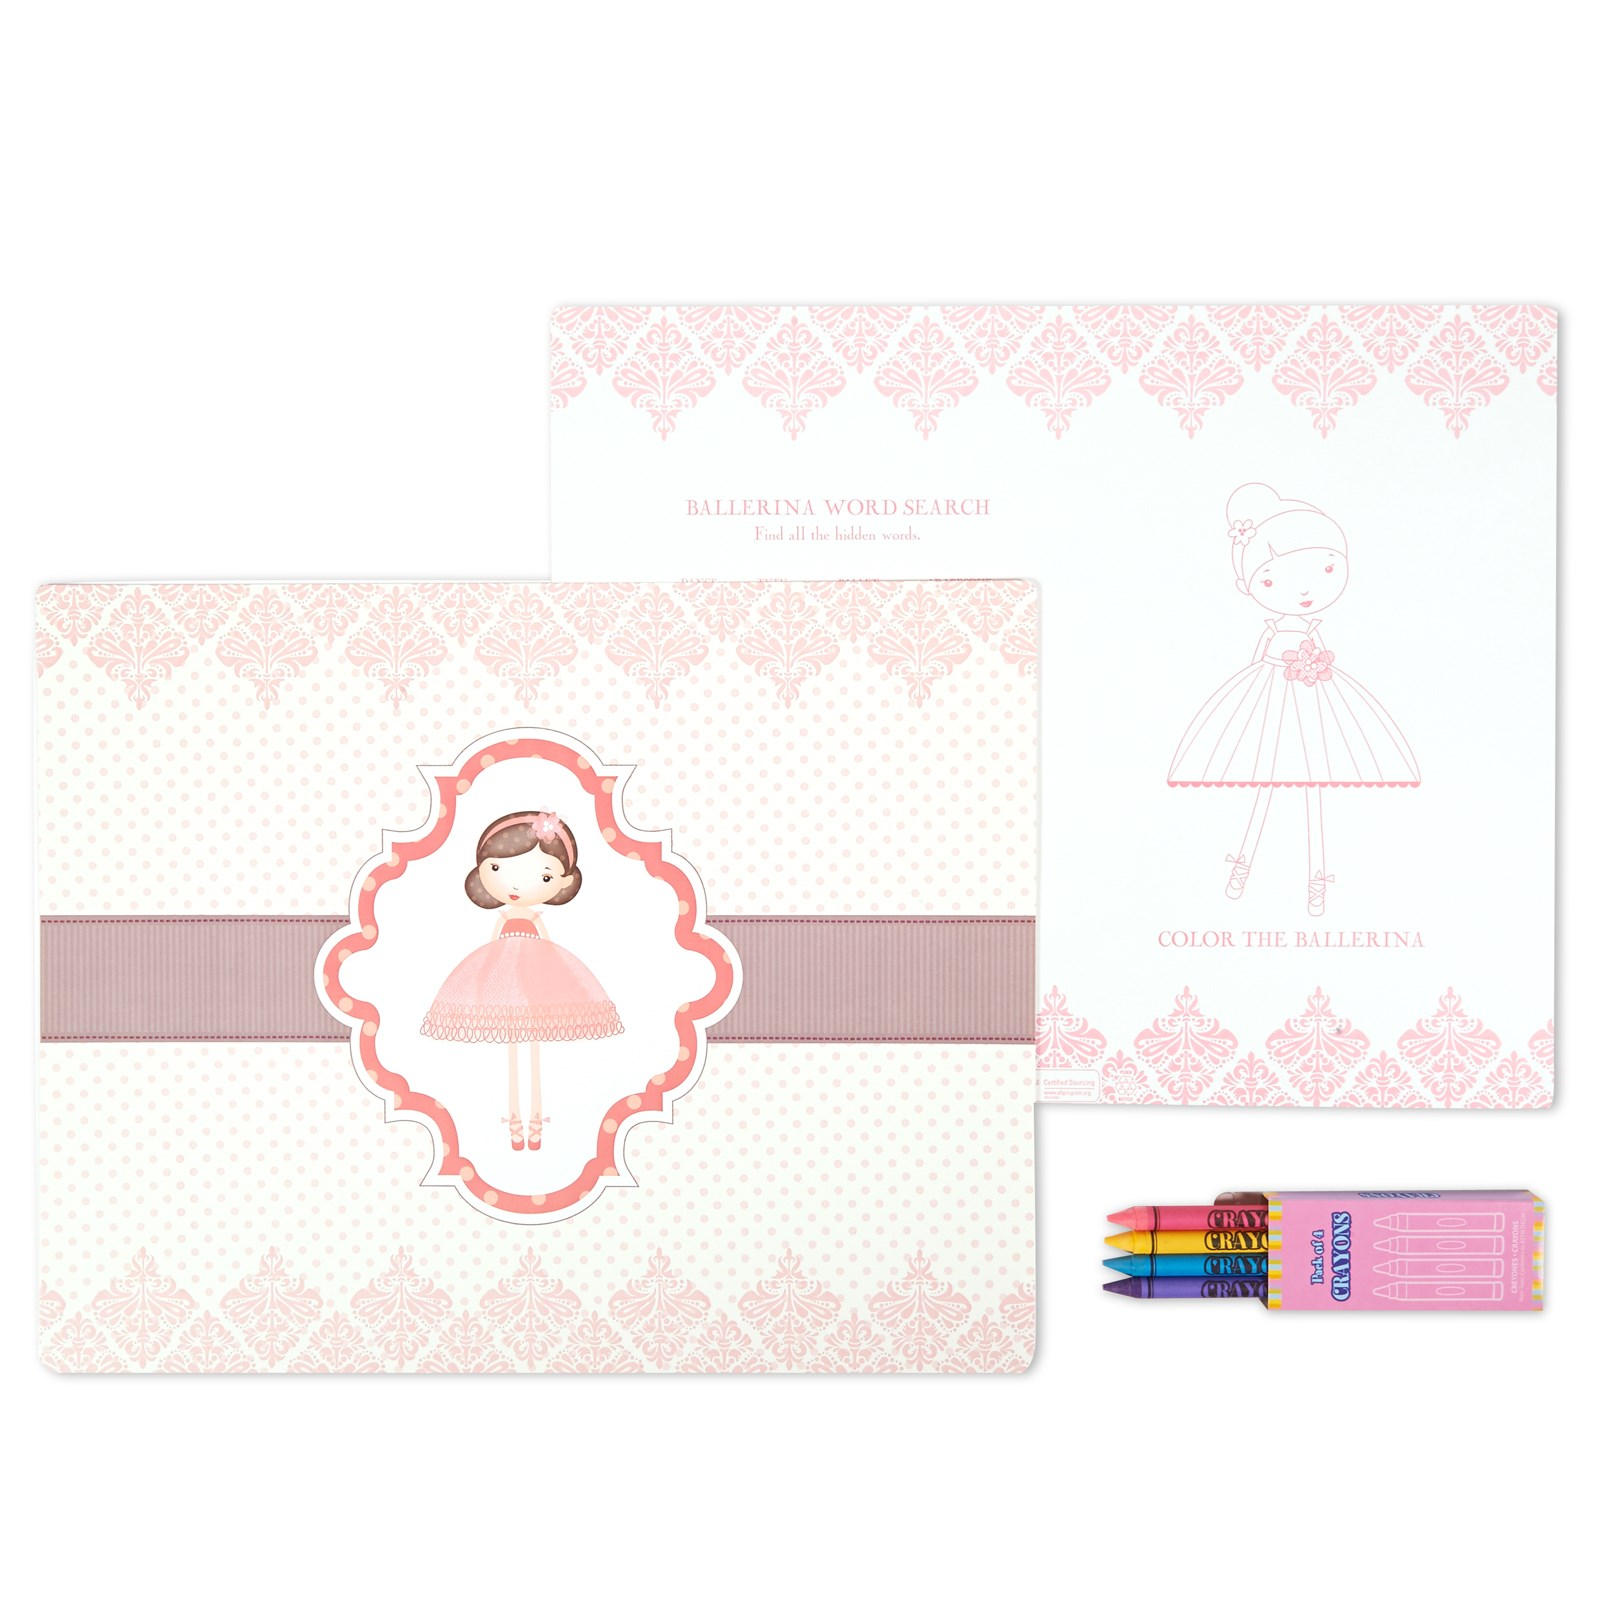 Image of Ballerina Tutu Activity Placemat Kit for 4